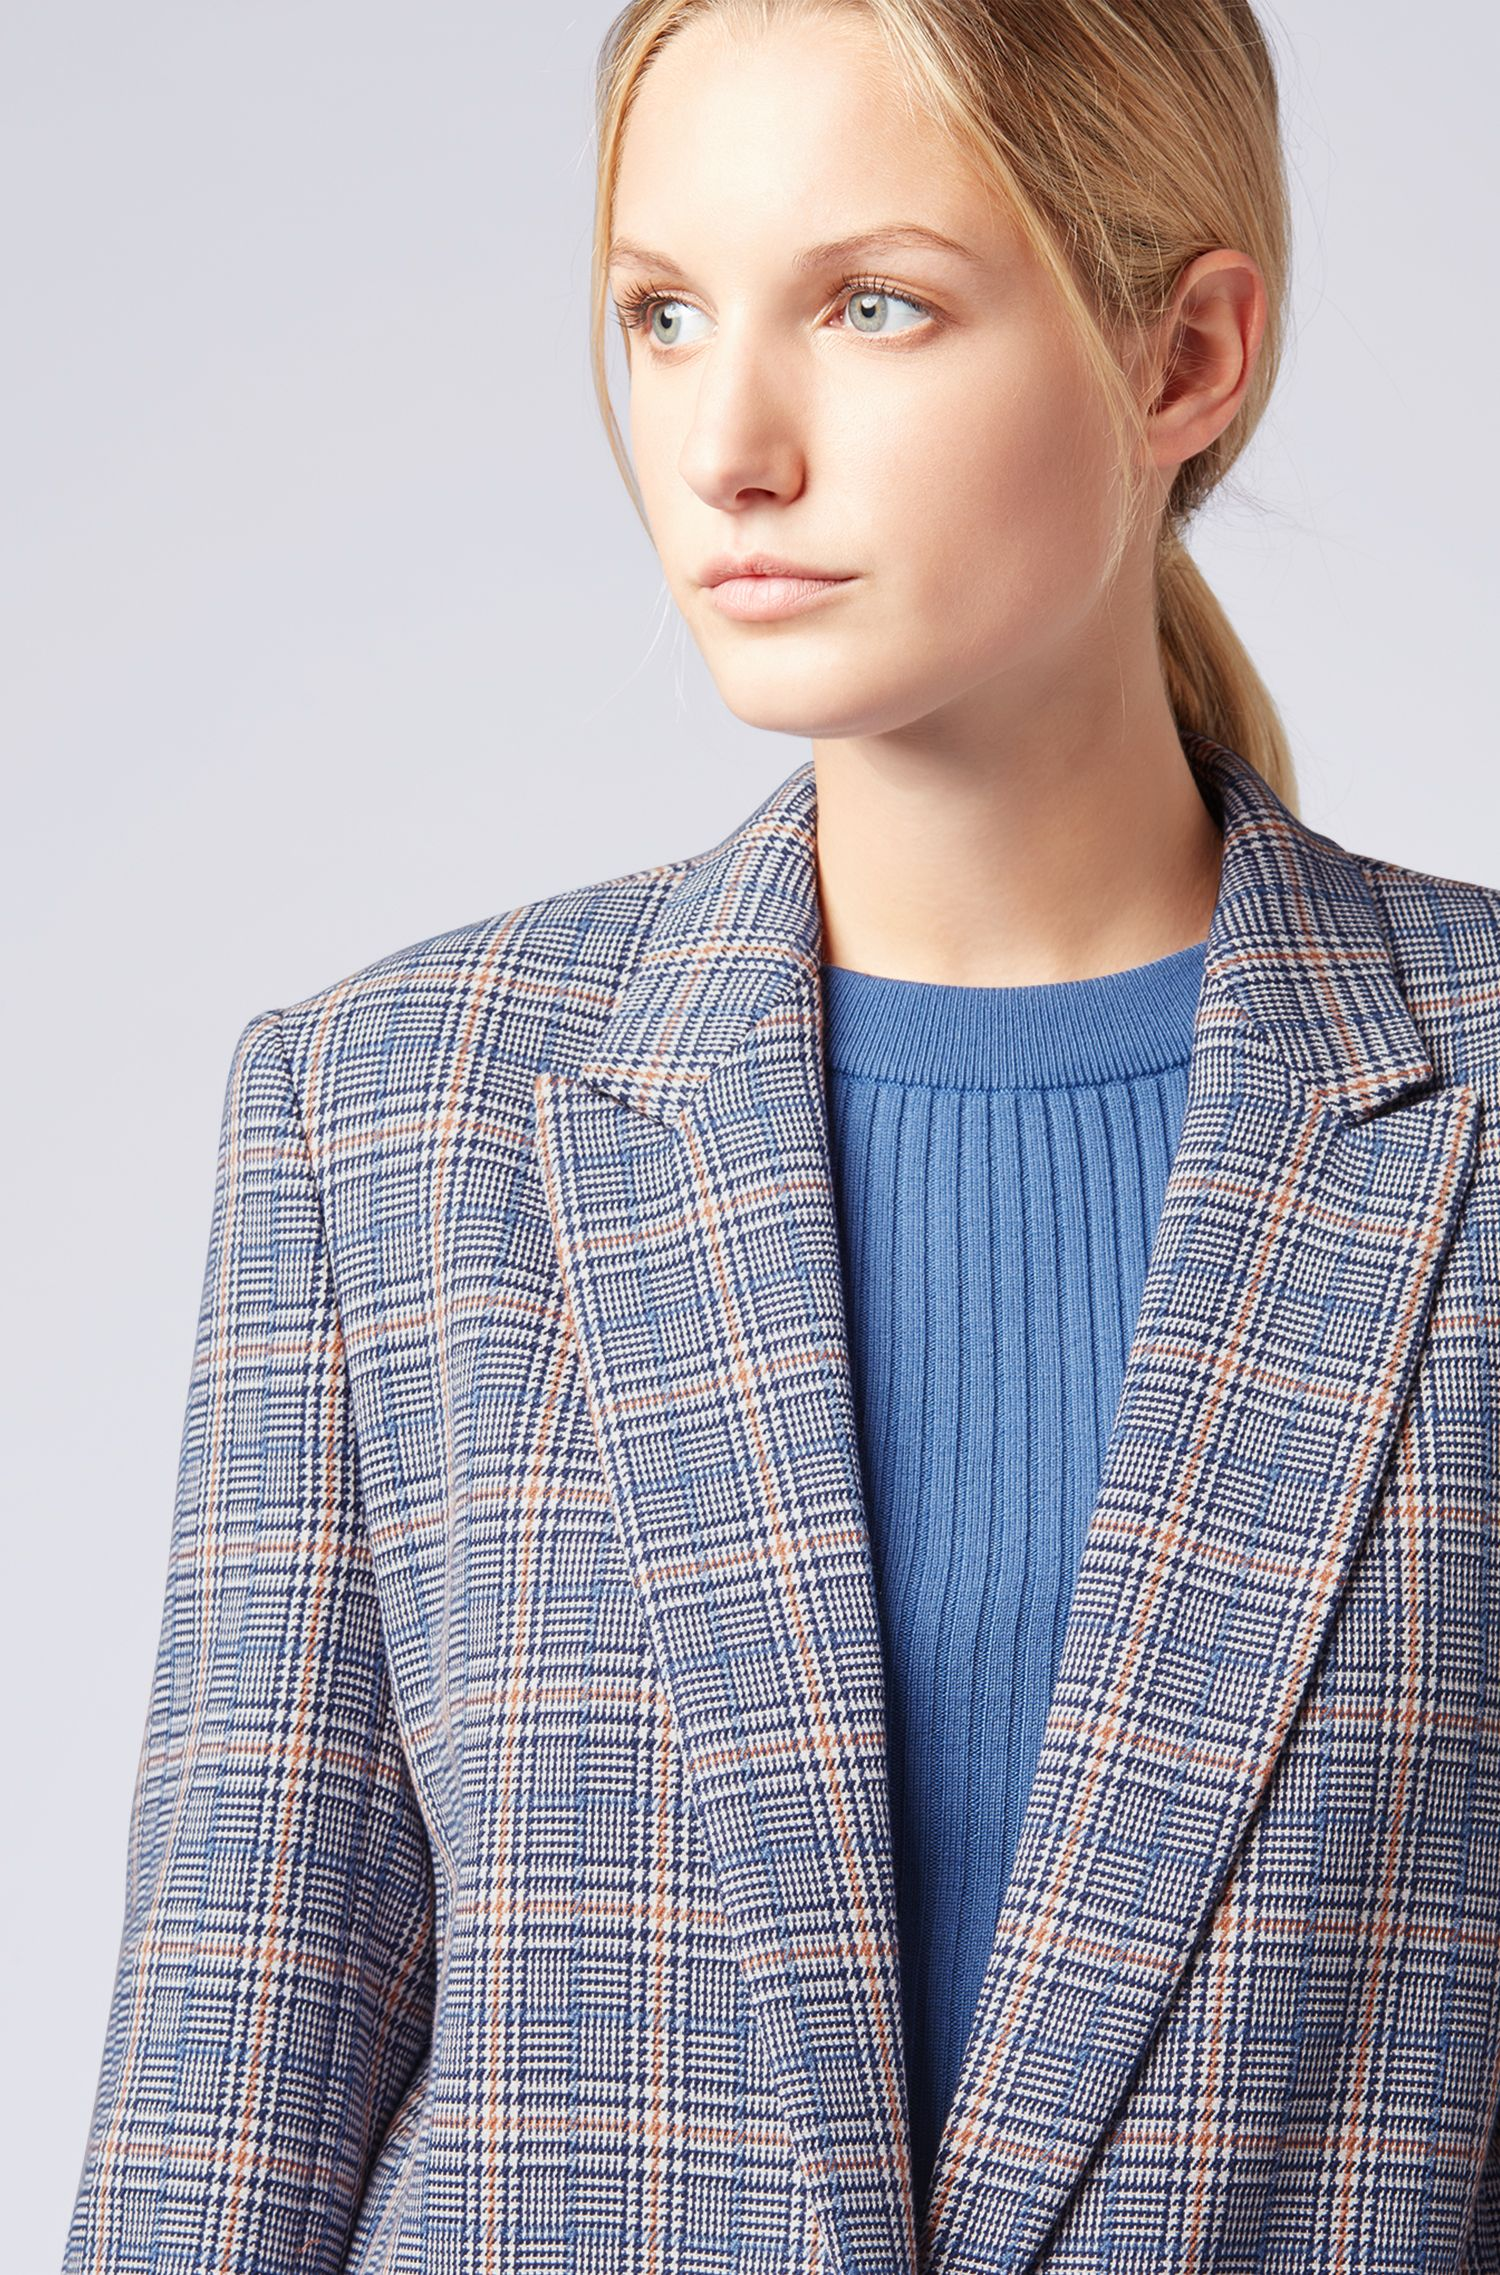 Relaxed-fit boyfriend jacket in a checked cotton blend, Patterned